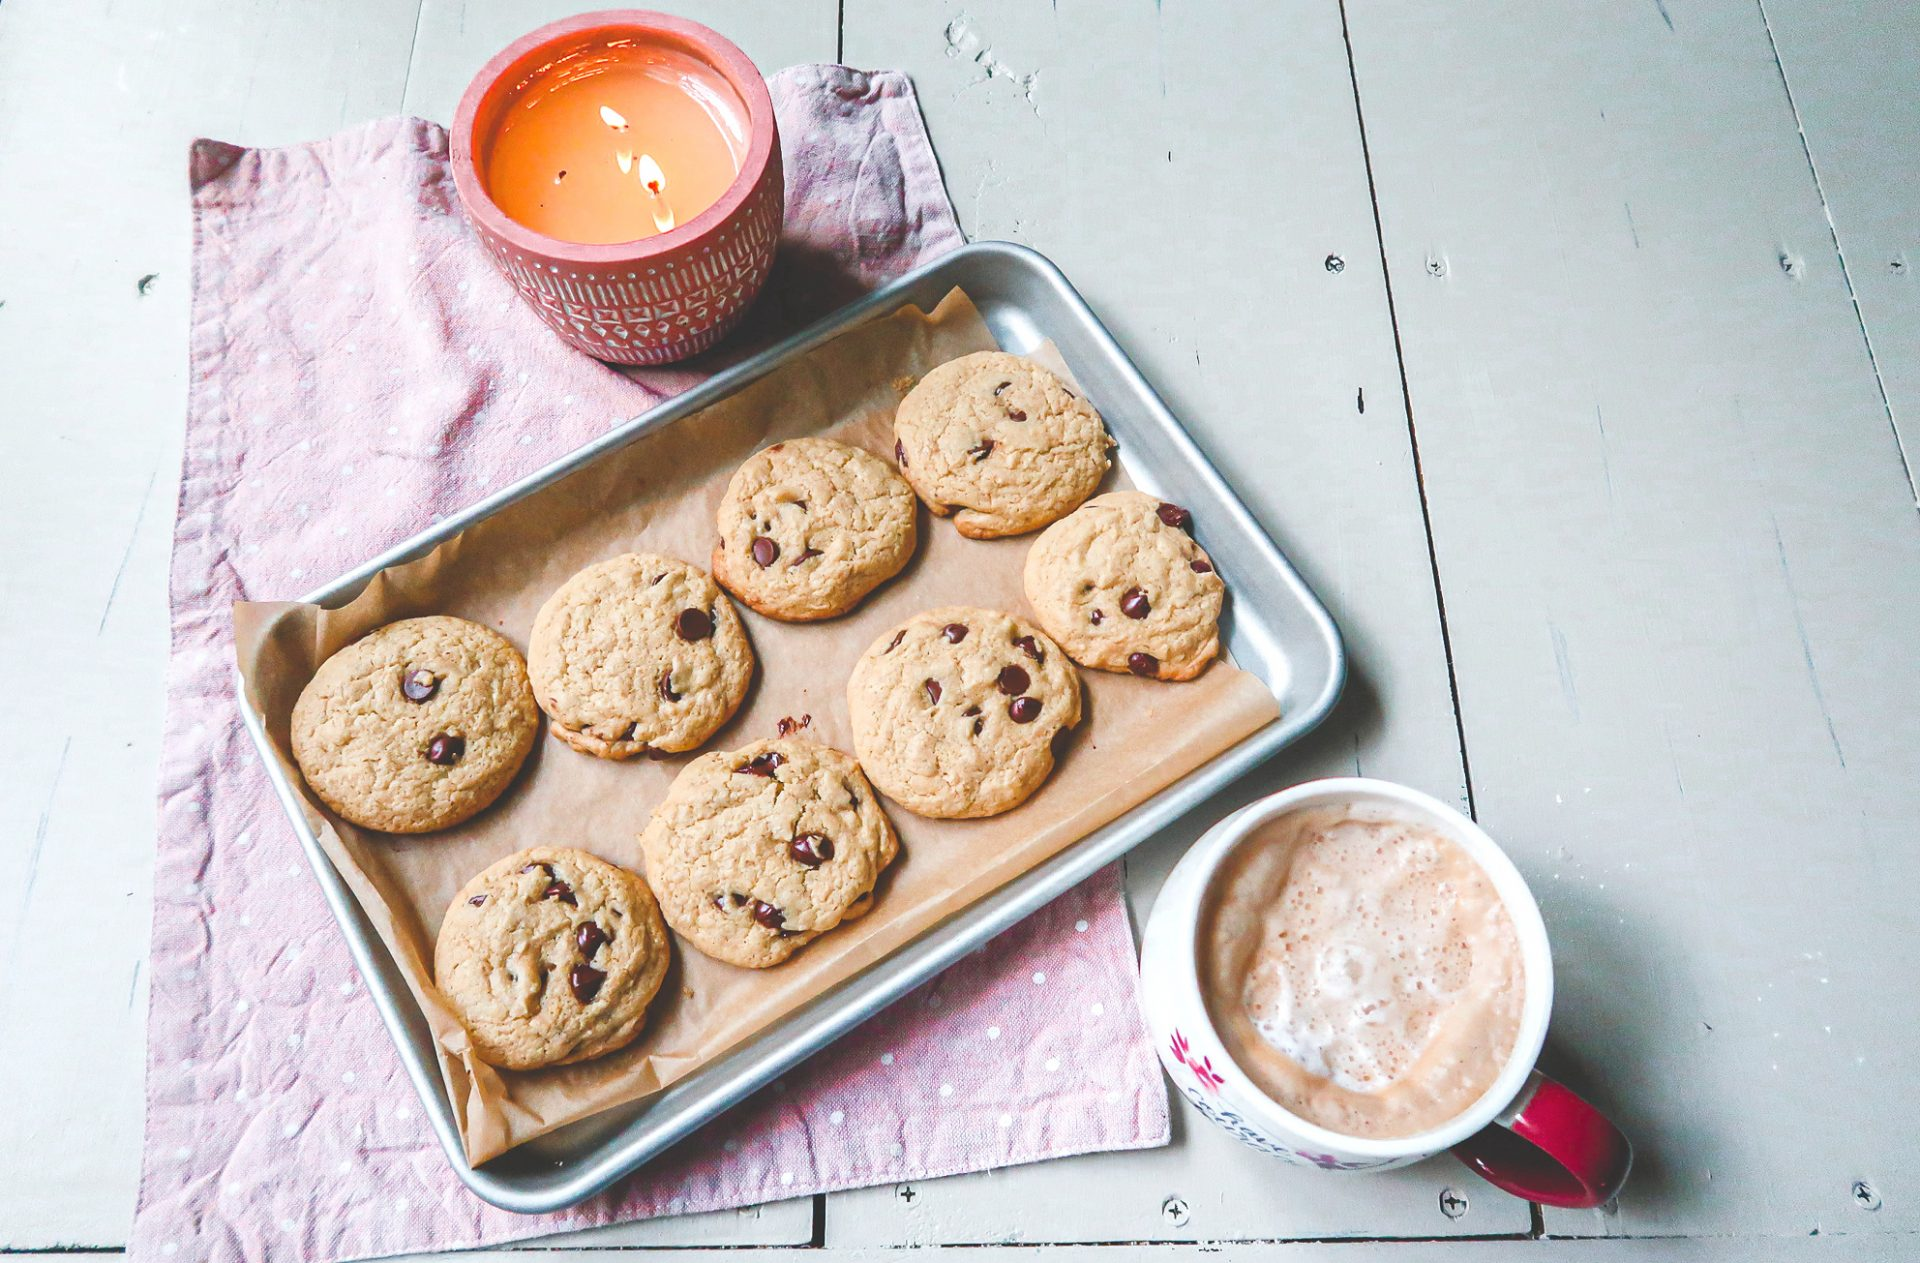 gluten and dairy free, gluten free, dairy free, healthier, light, chocolate chip cookies, delicious, baking, fall baking, chocolate chips, simply taralynn blog